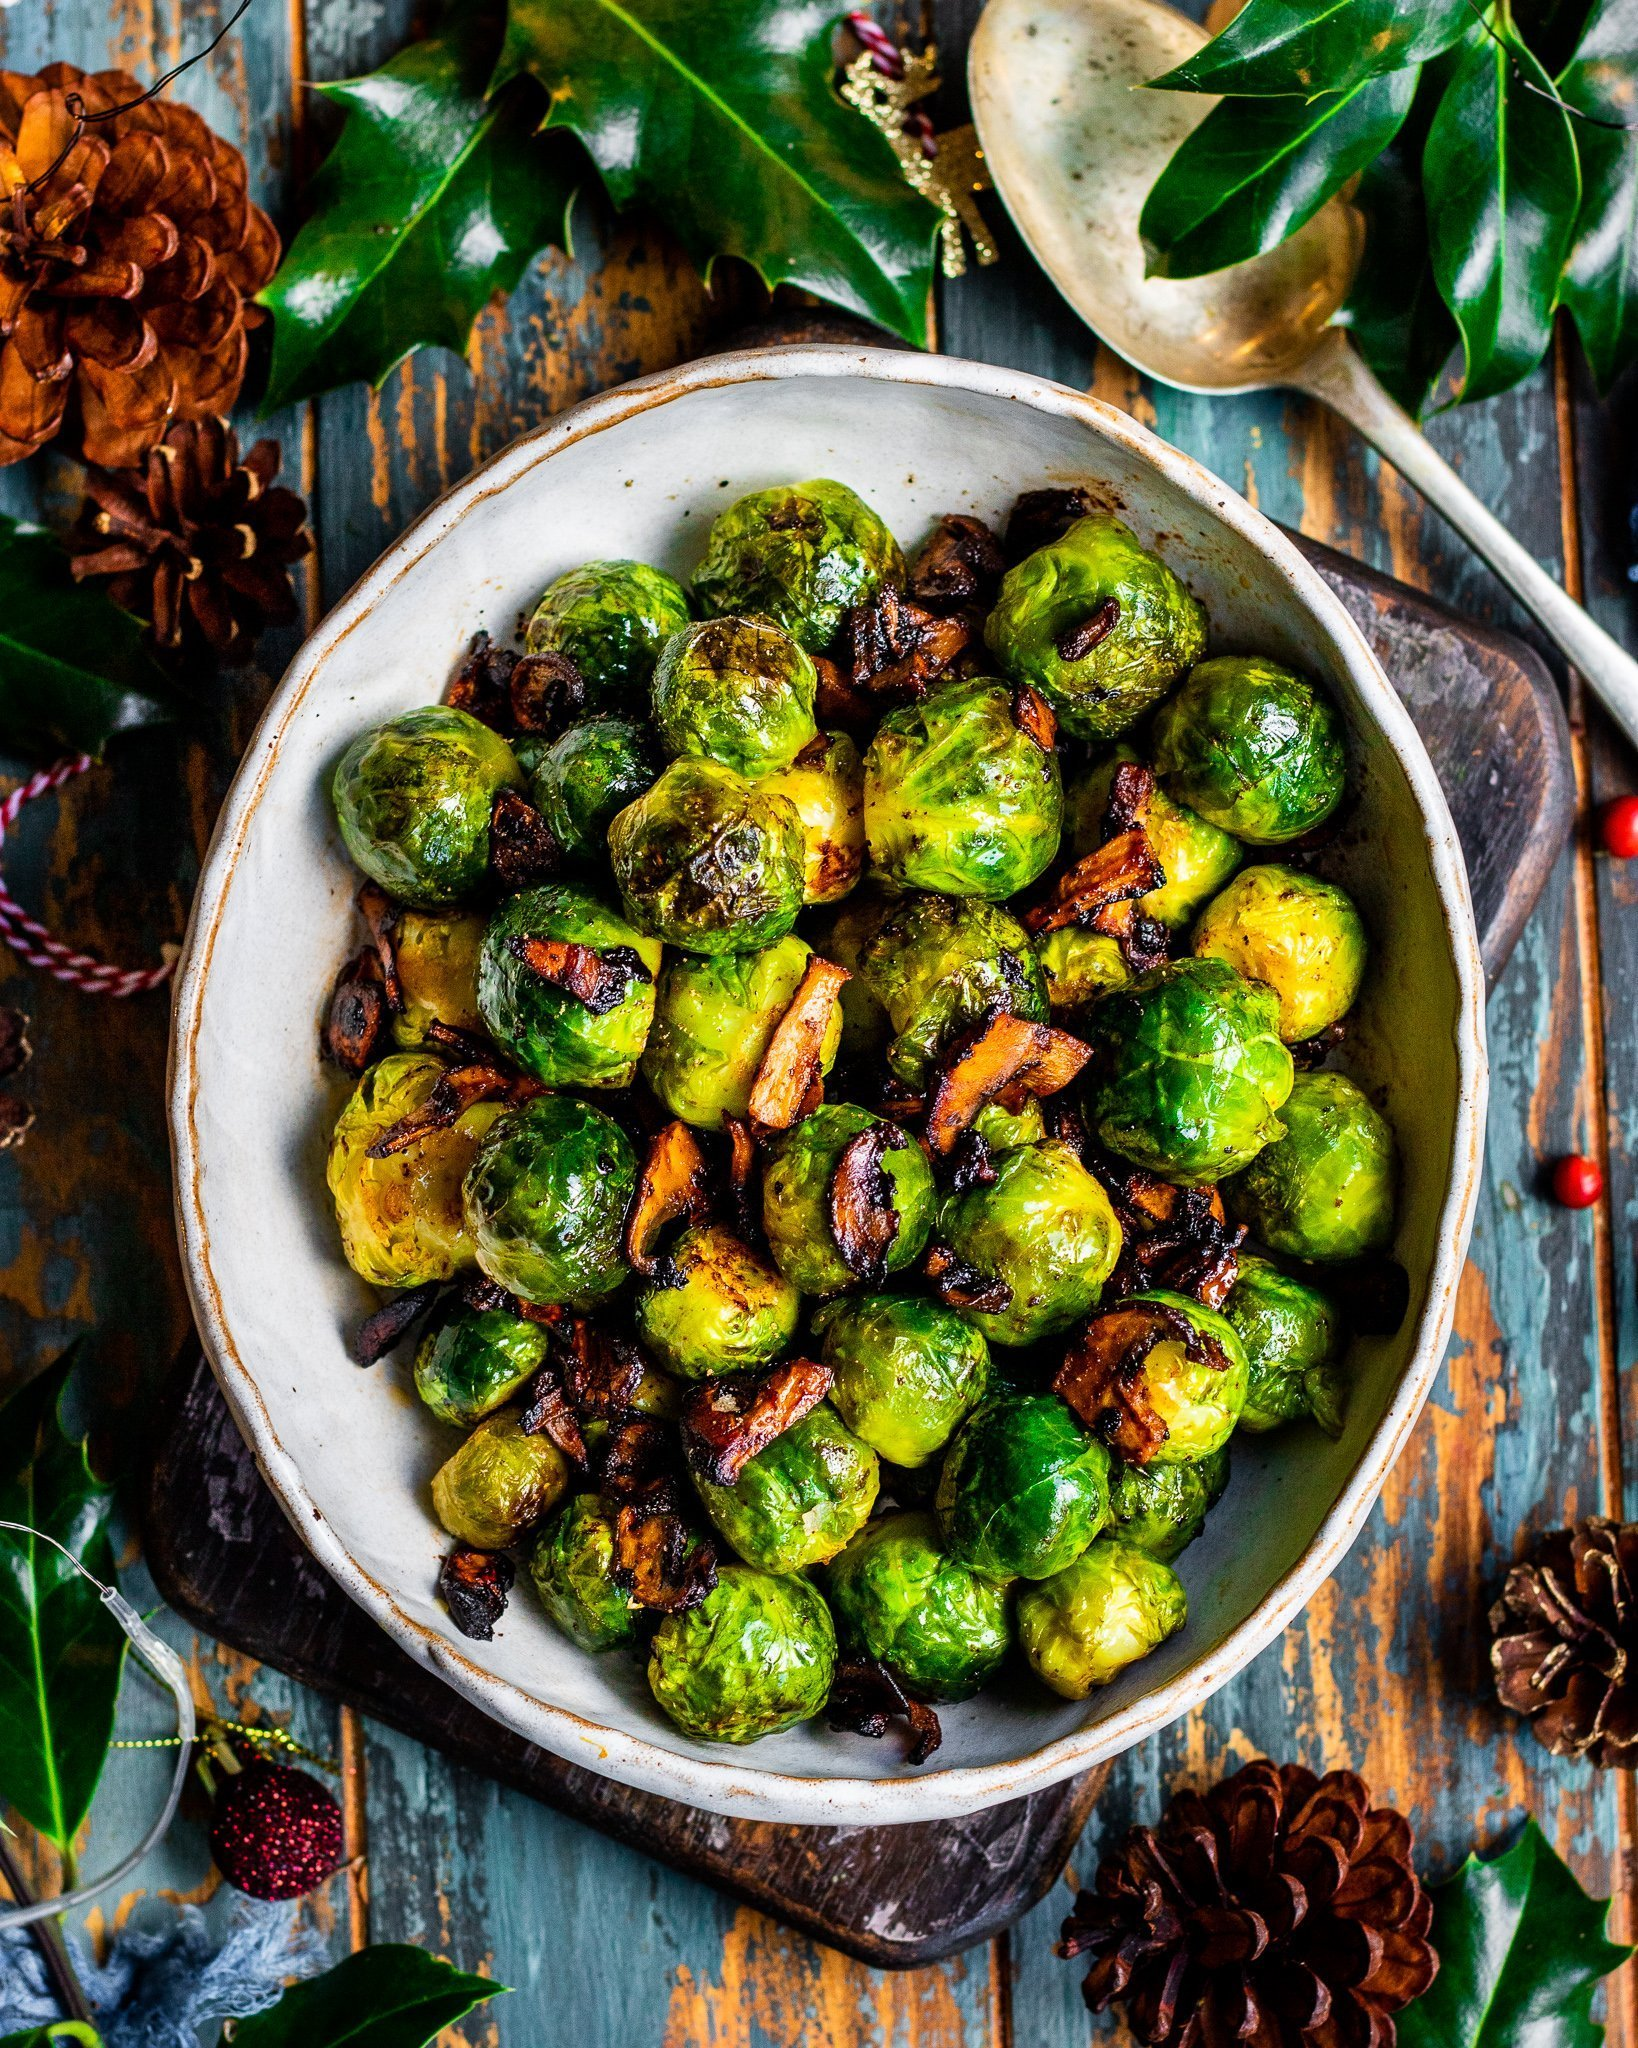 Brussel Sprouts with Smoky Mushrooms